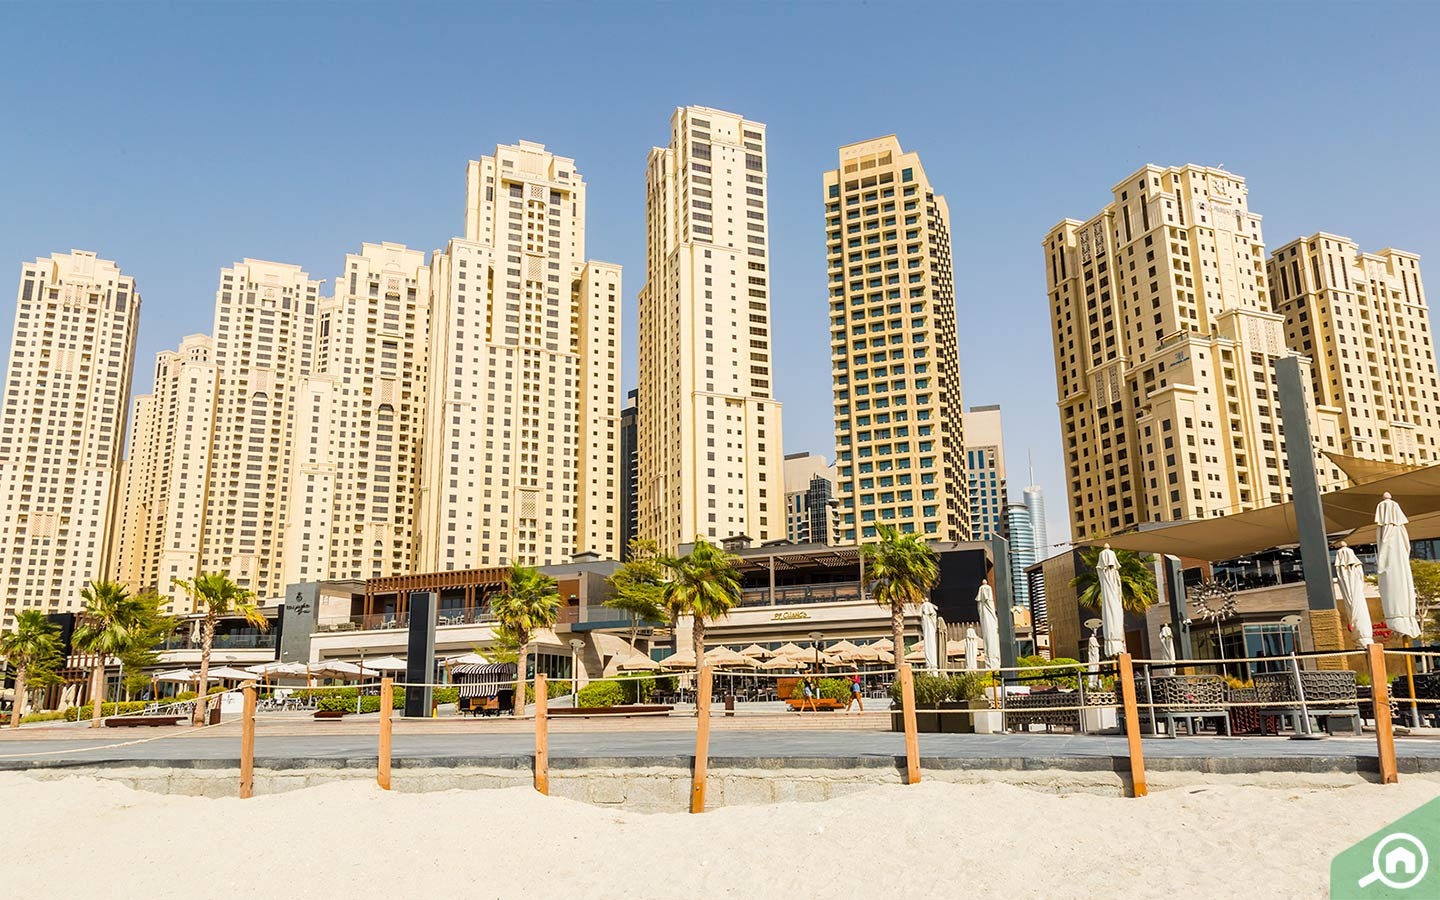 jbr beach near sadaf 5